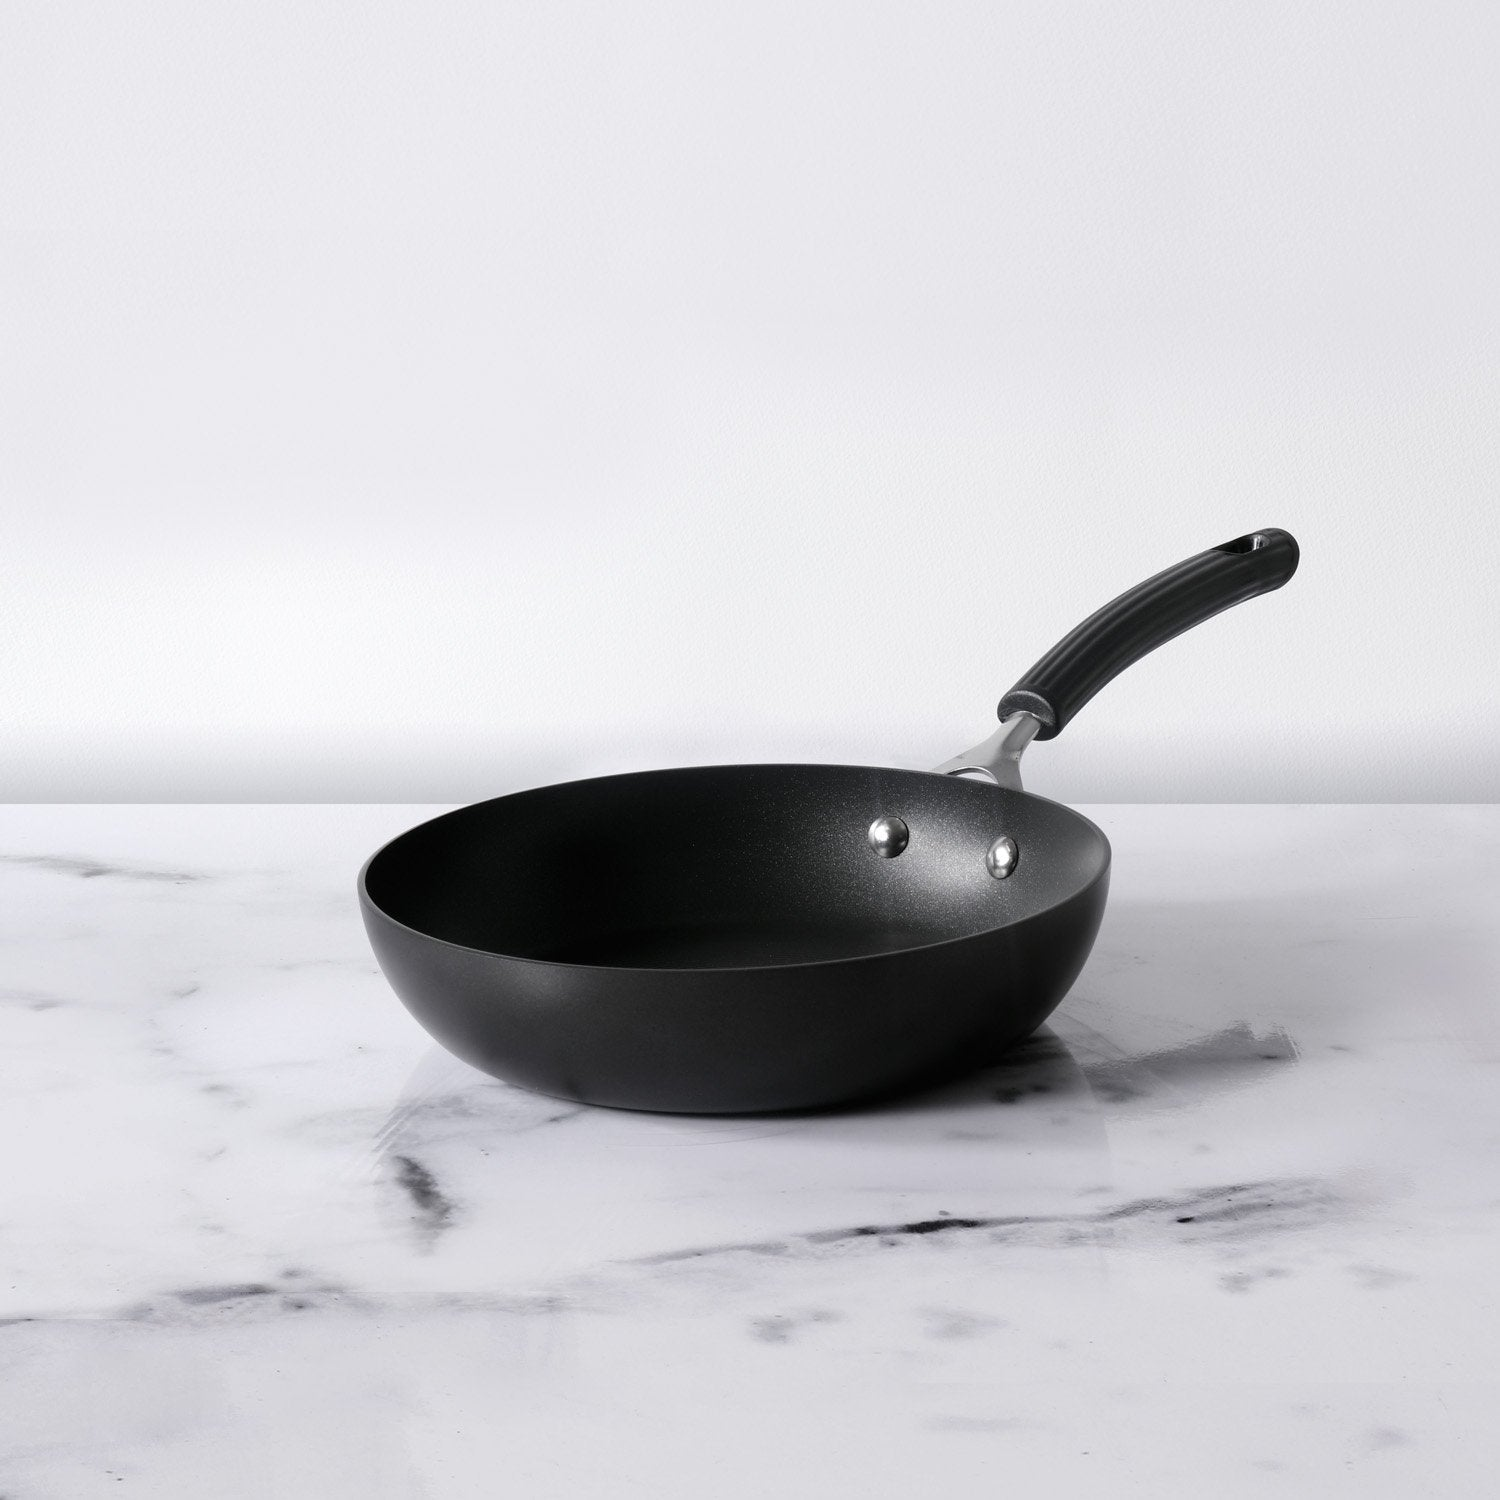 Circulon Origins 24cm Non-Stick + Hard Anodized Frypan/Skillet, Grey (Suitable For Gas & Induction) - Pots and Pans